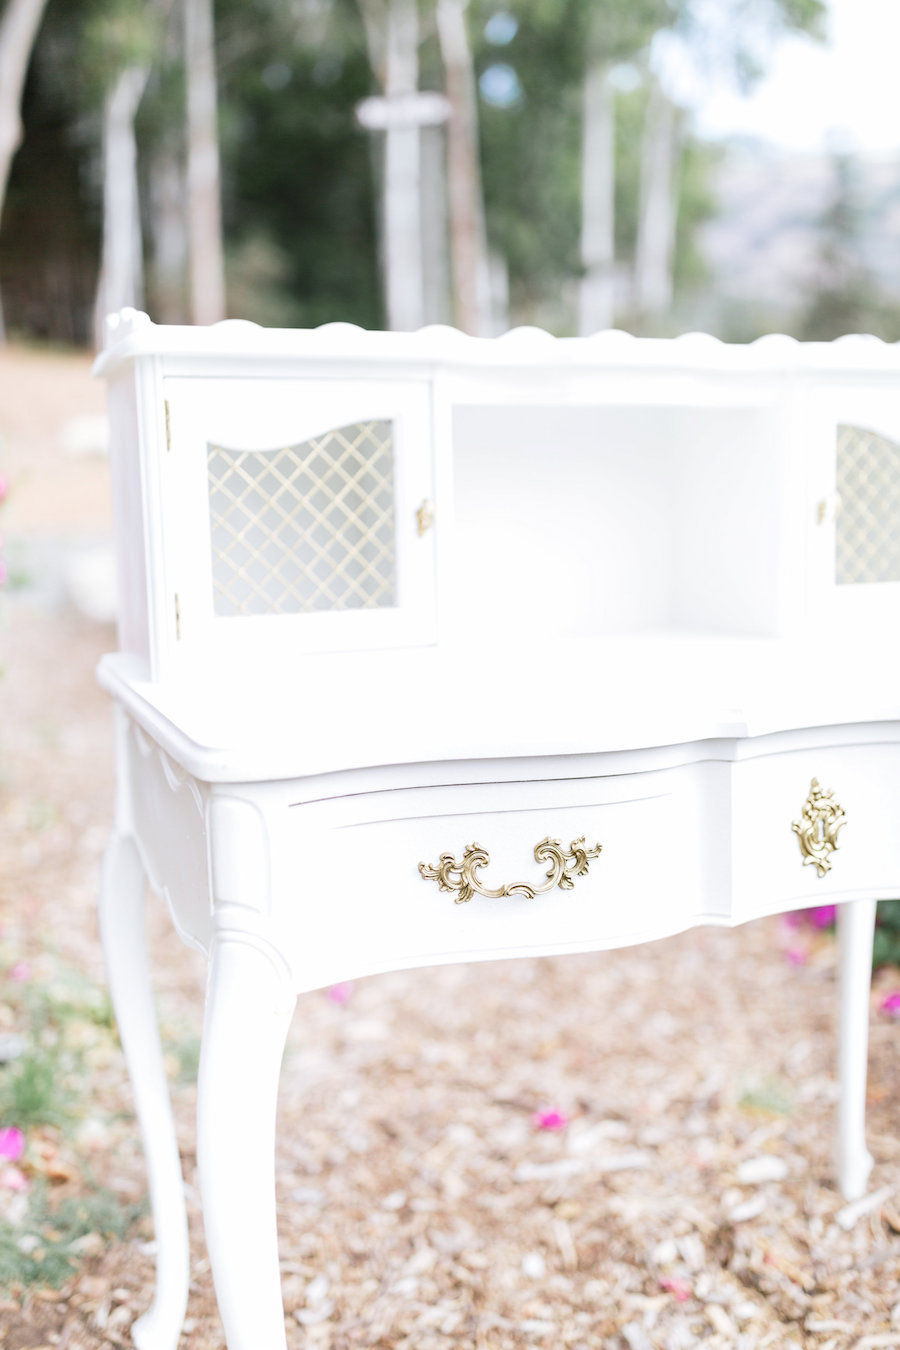 Colette French Writing Desk 6 - Provenance Vintage Rentals Los Angeles Vintage Rentals Near Me French Desk Hutch White Gold French Desk White Gold Wedding Decor Rentals Vintage Furniture Rentals Party Rentals Near Me Los Angeles.jpg